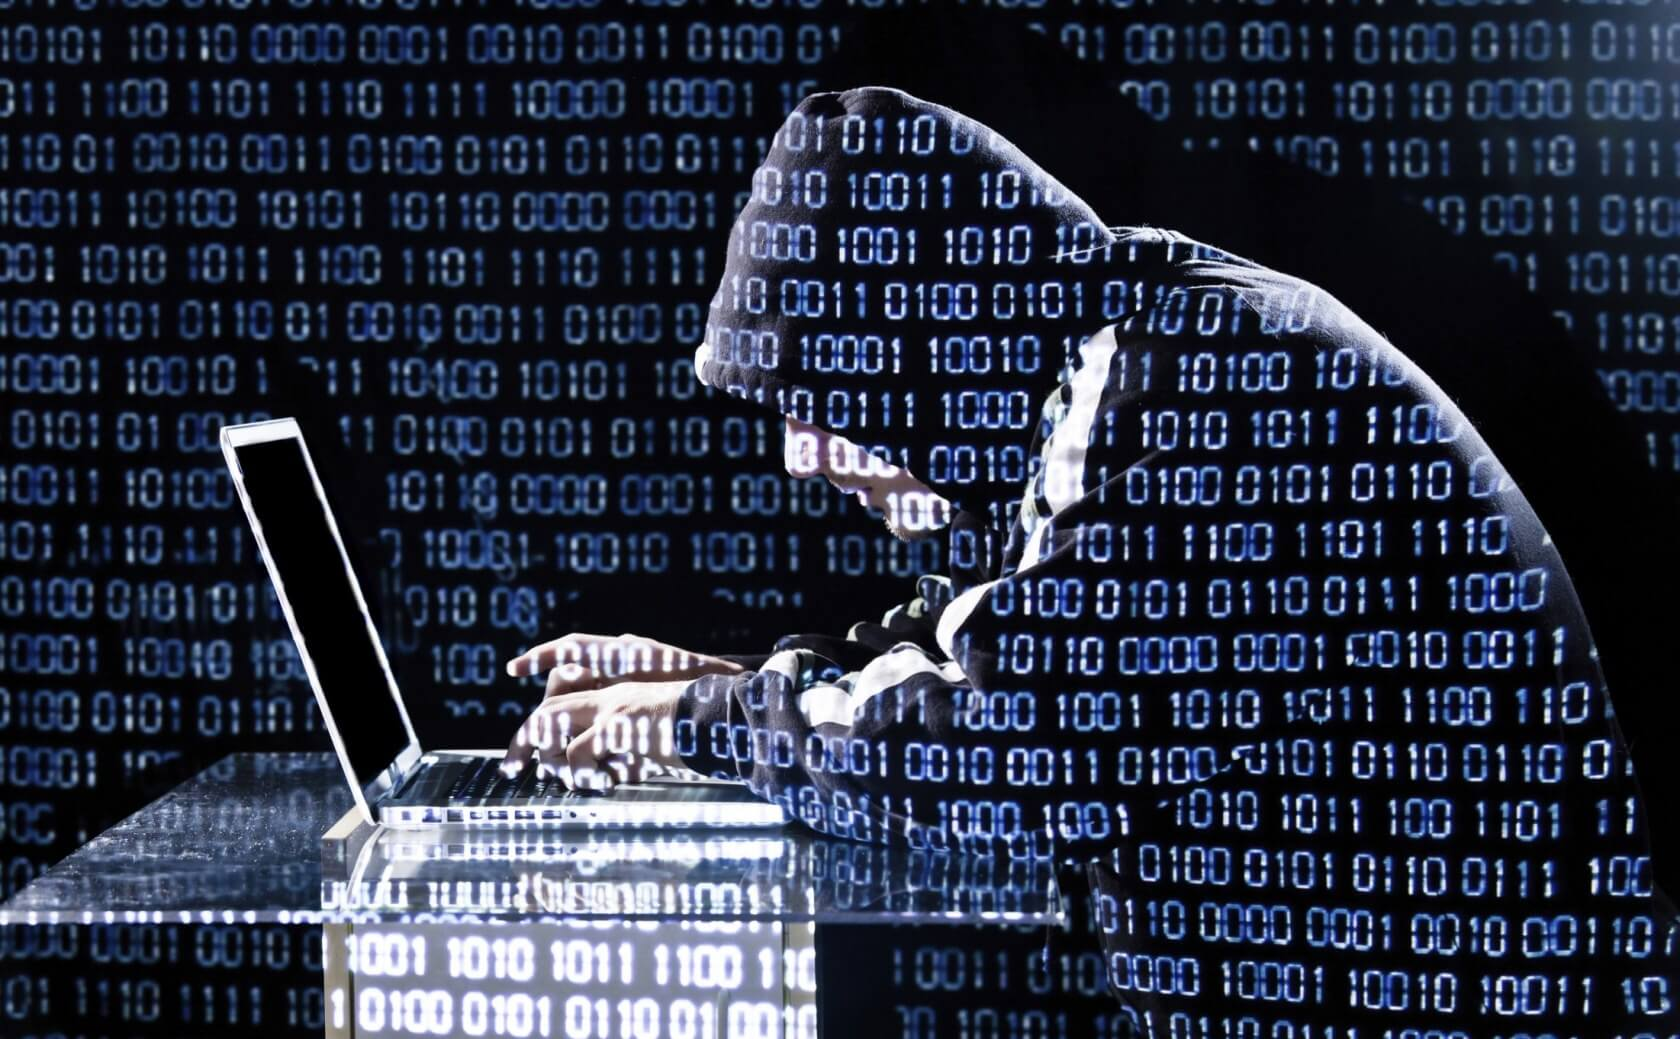 VPNFilter router malware is worse than first thought, affects more devices